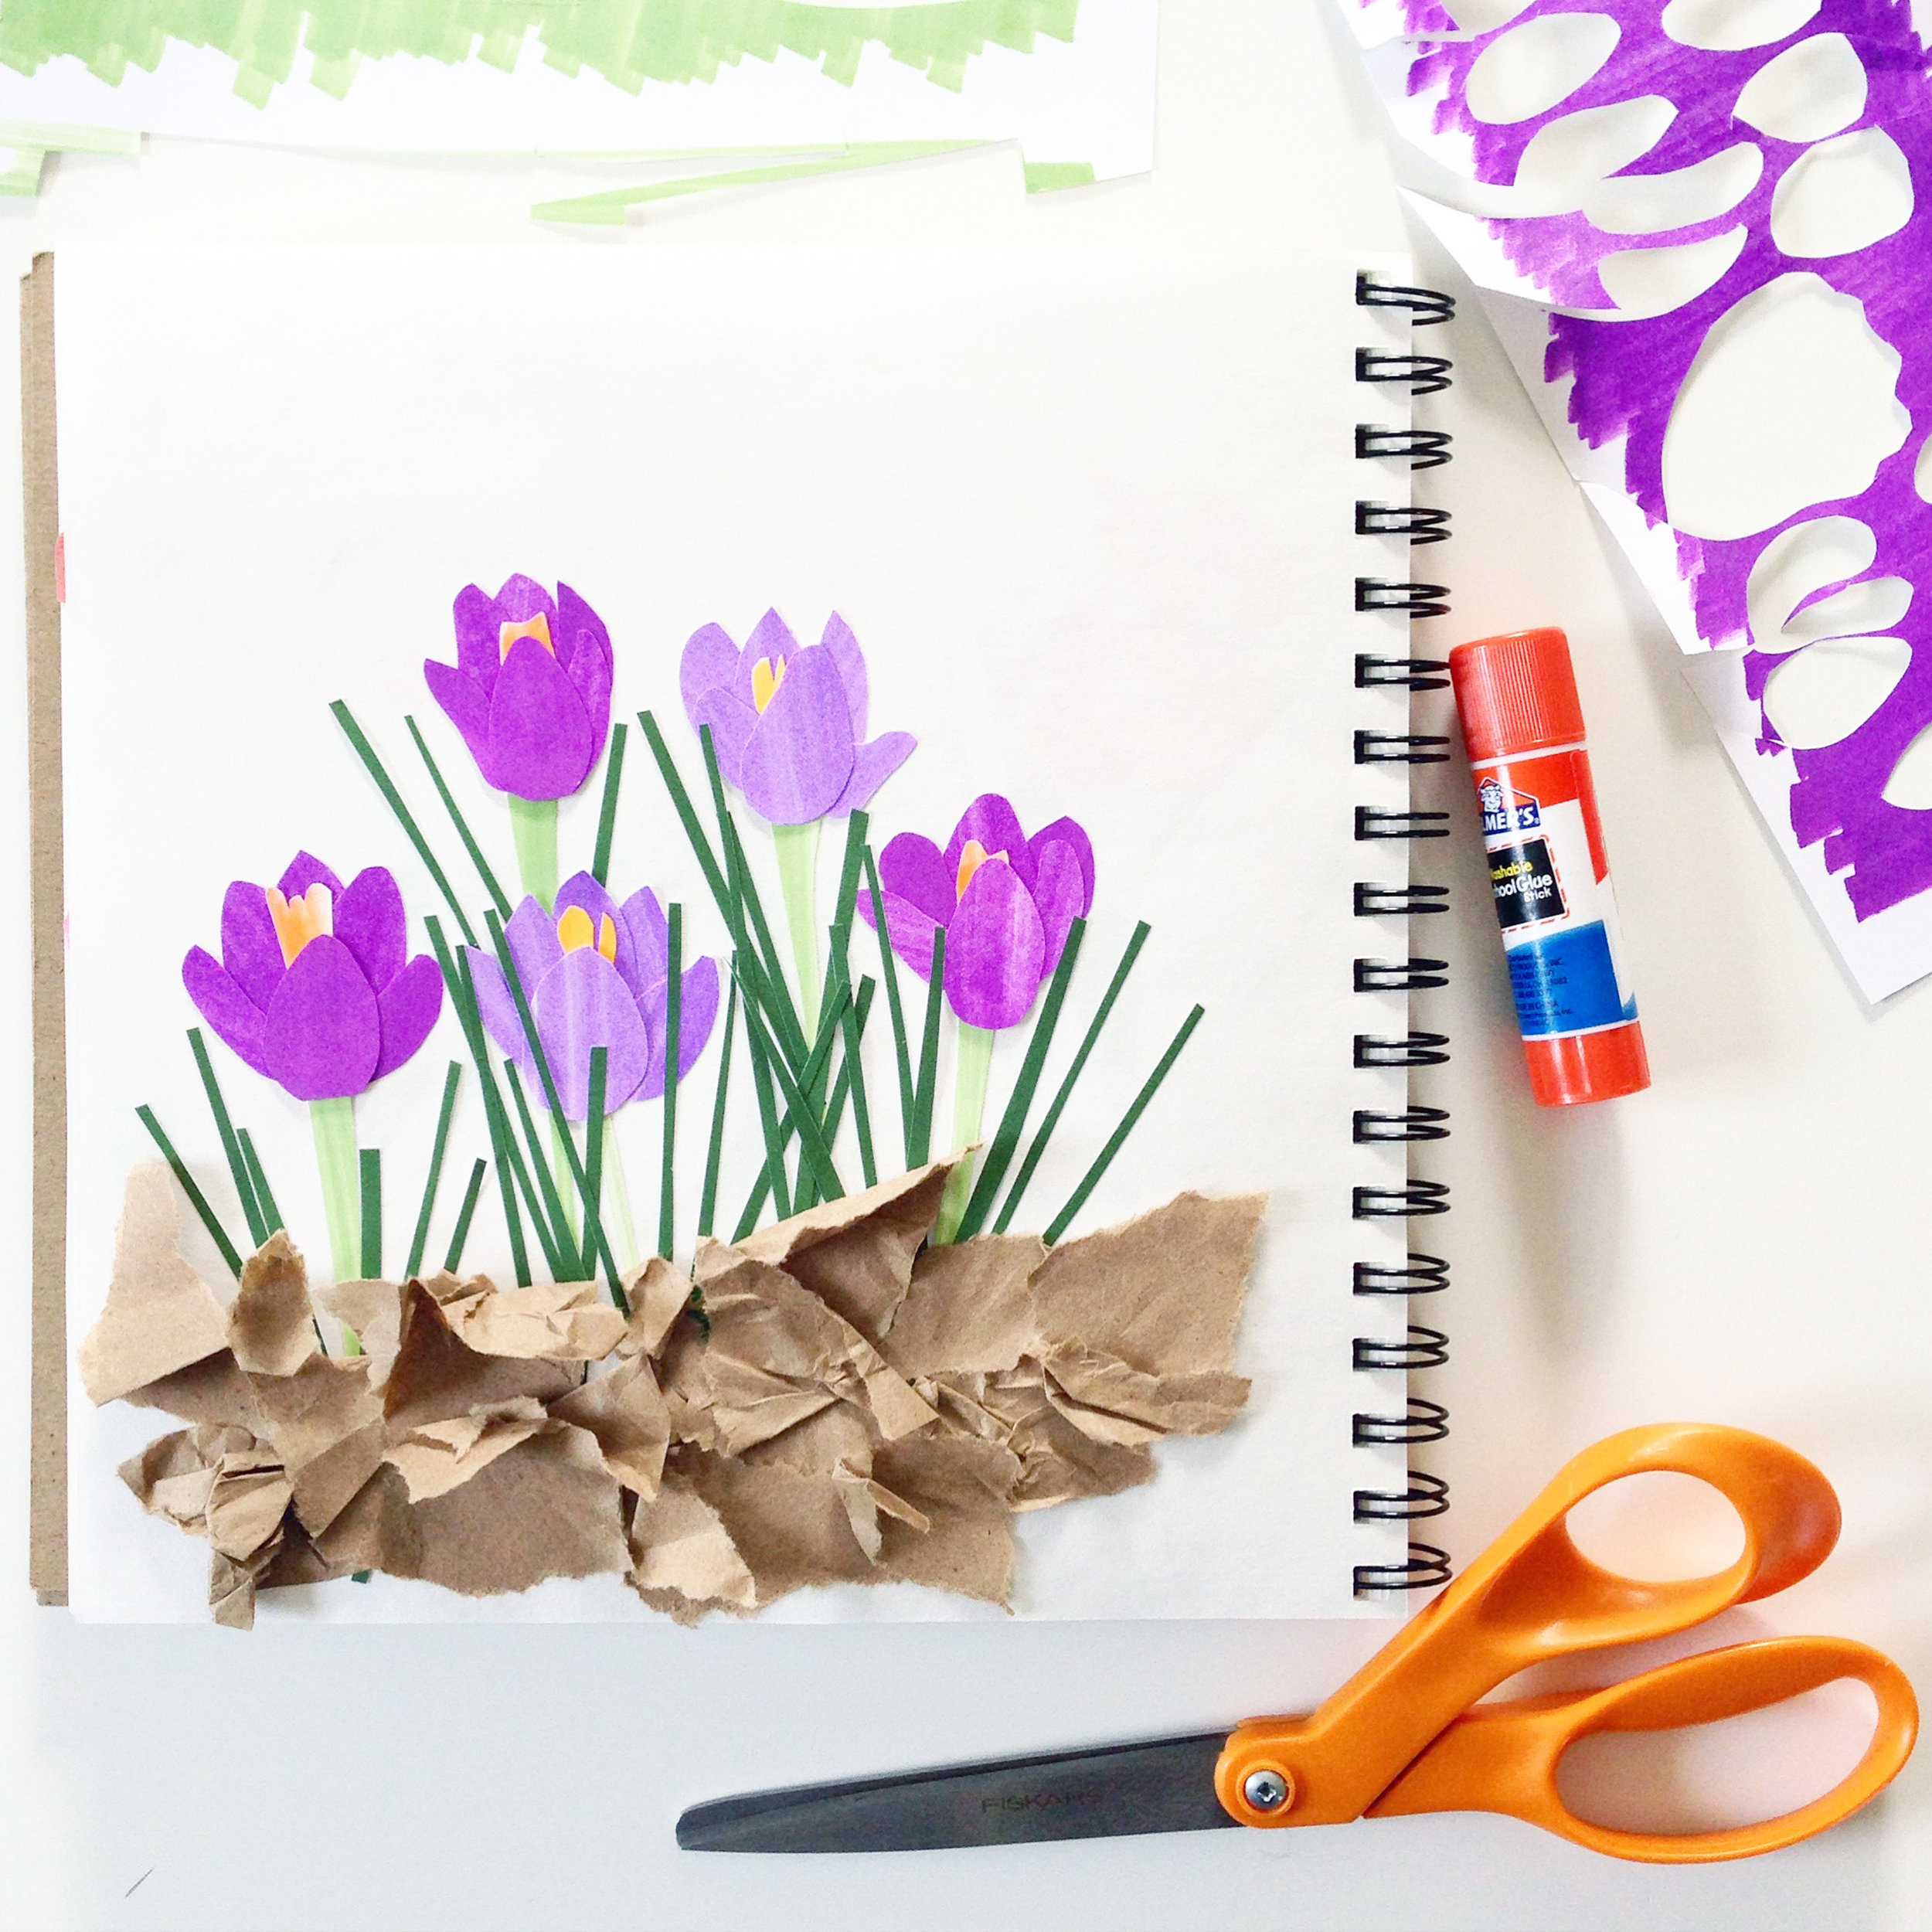 Collaged Crocuses in Anne Butera's Sketchbook shows that Sketchbooks aren't just for sketching